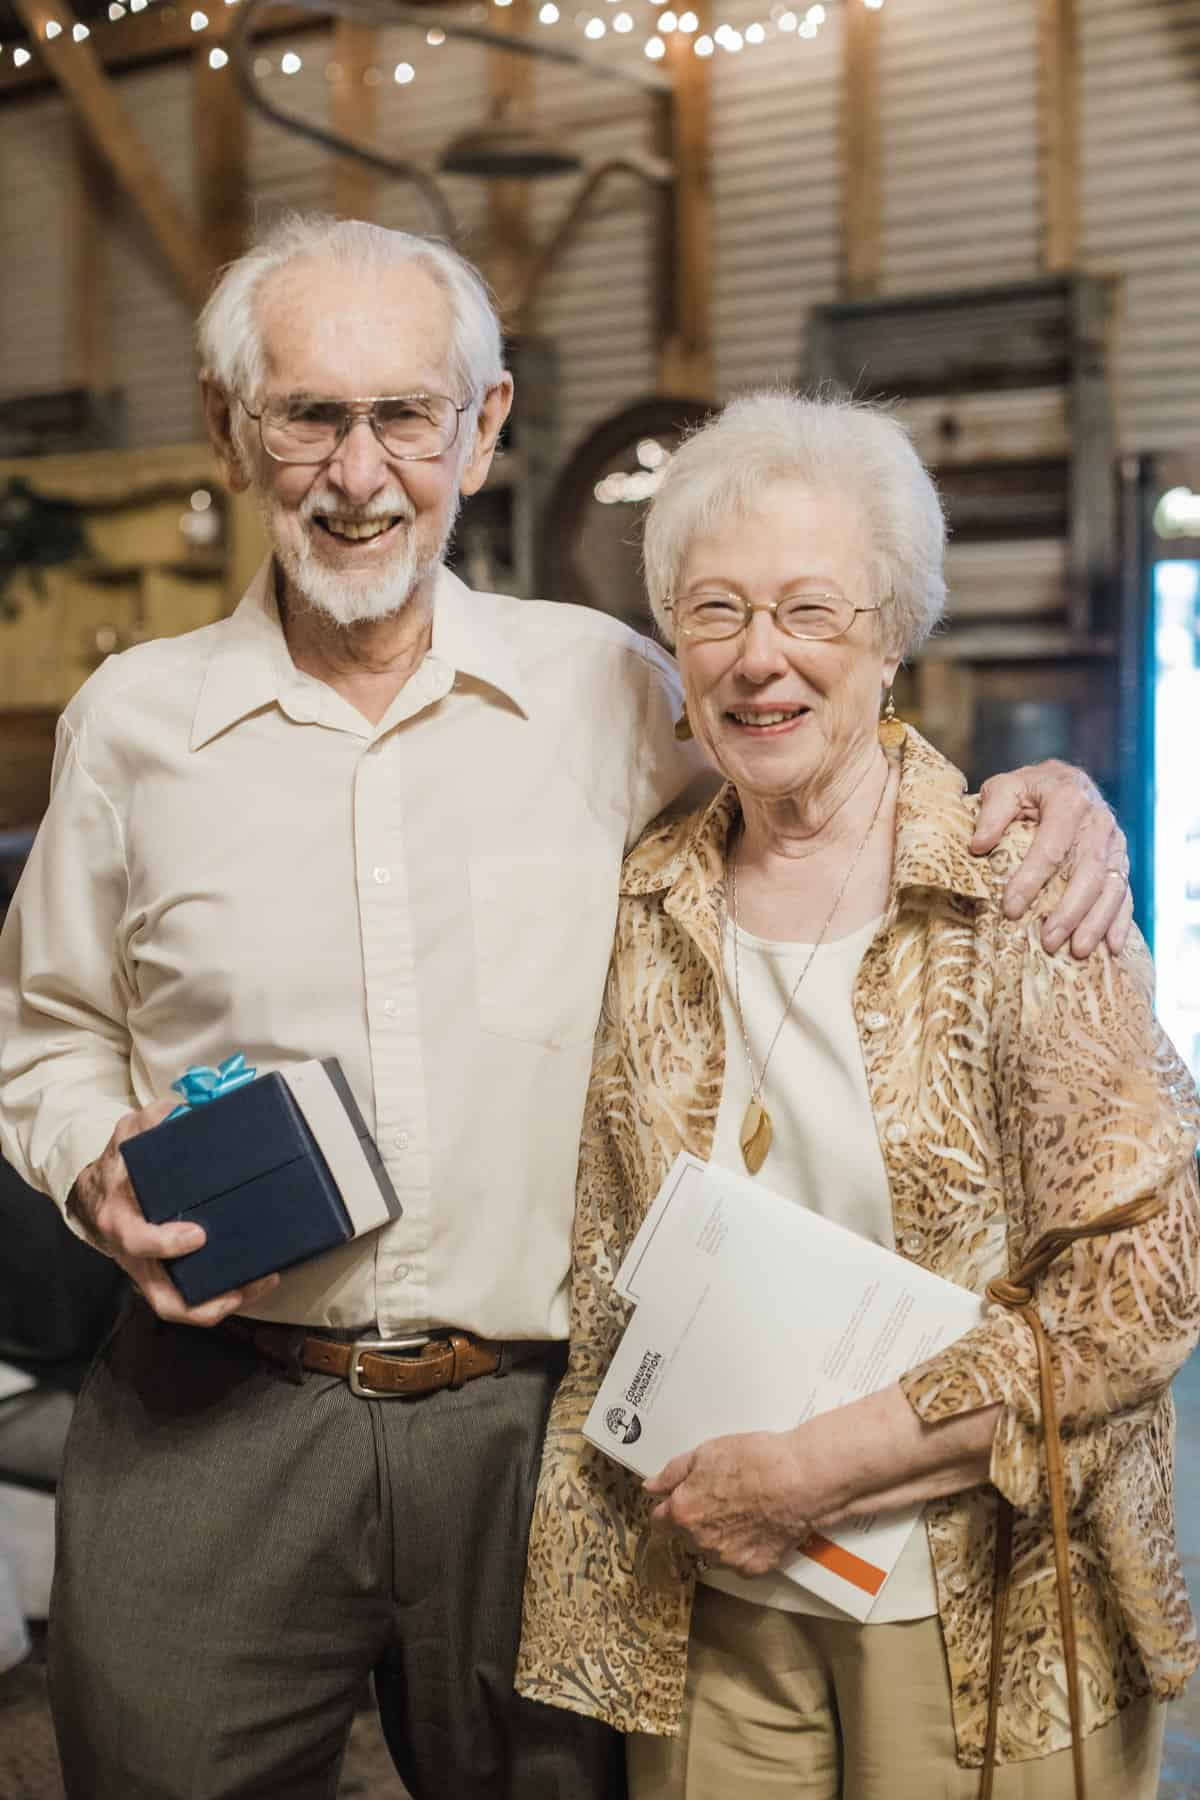 Drs. Norman and Nancy Eiss smiling with their awards